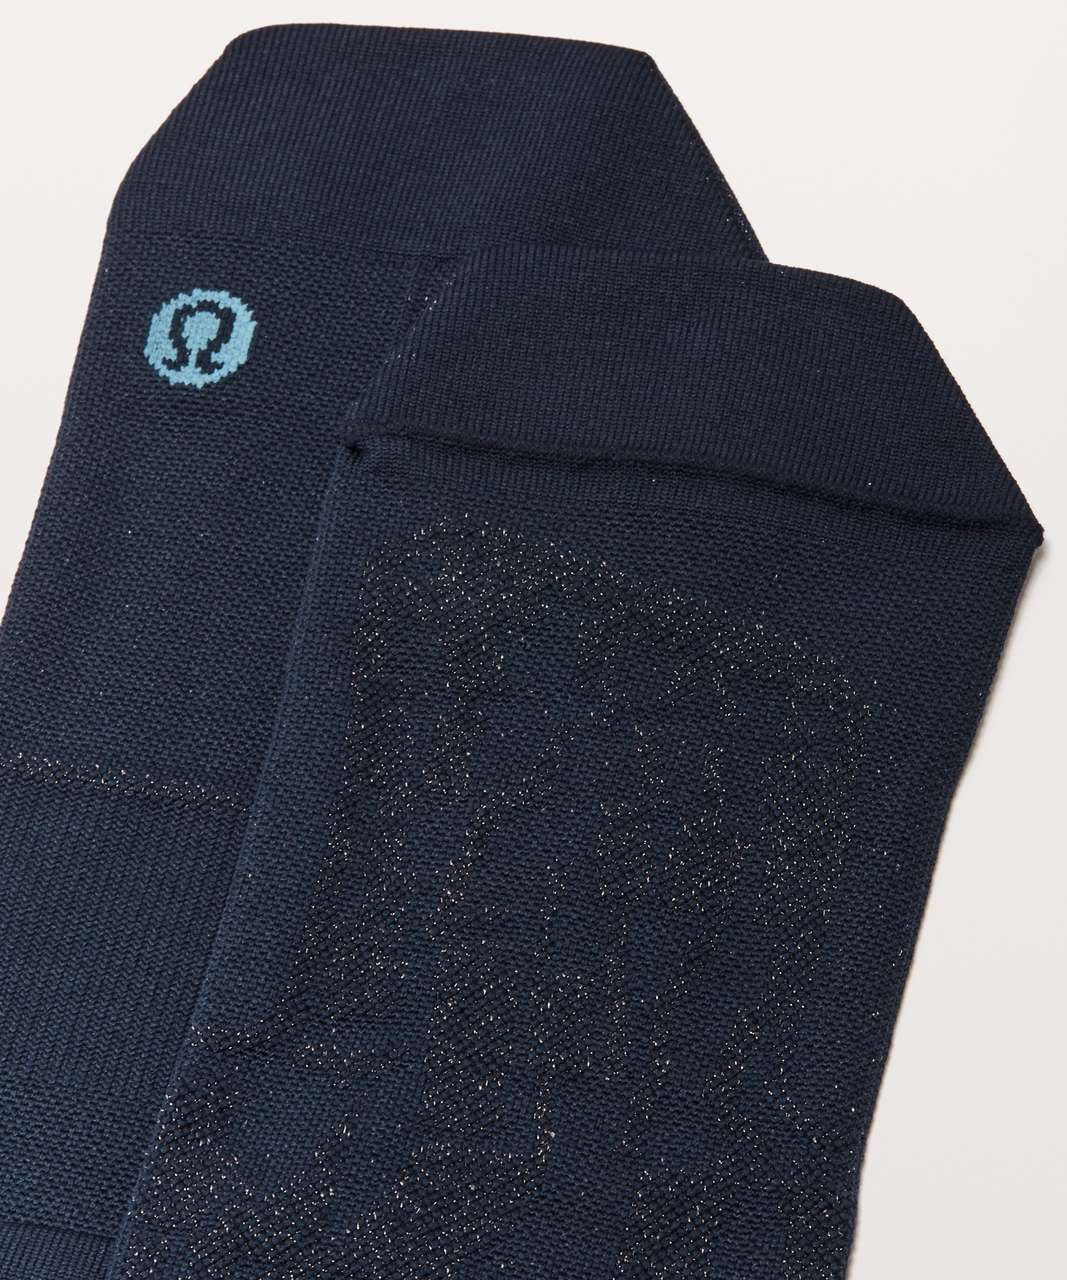 Lululemon Surge Sock *Silver - True Navy